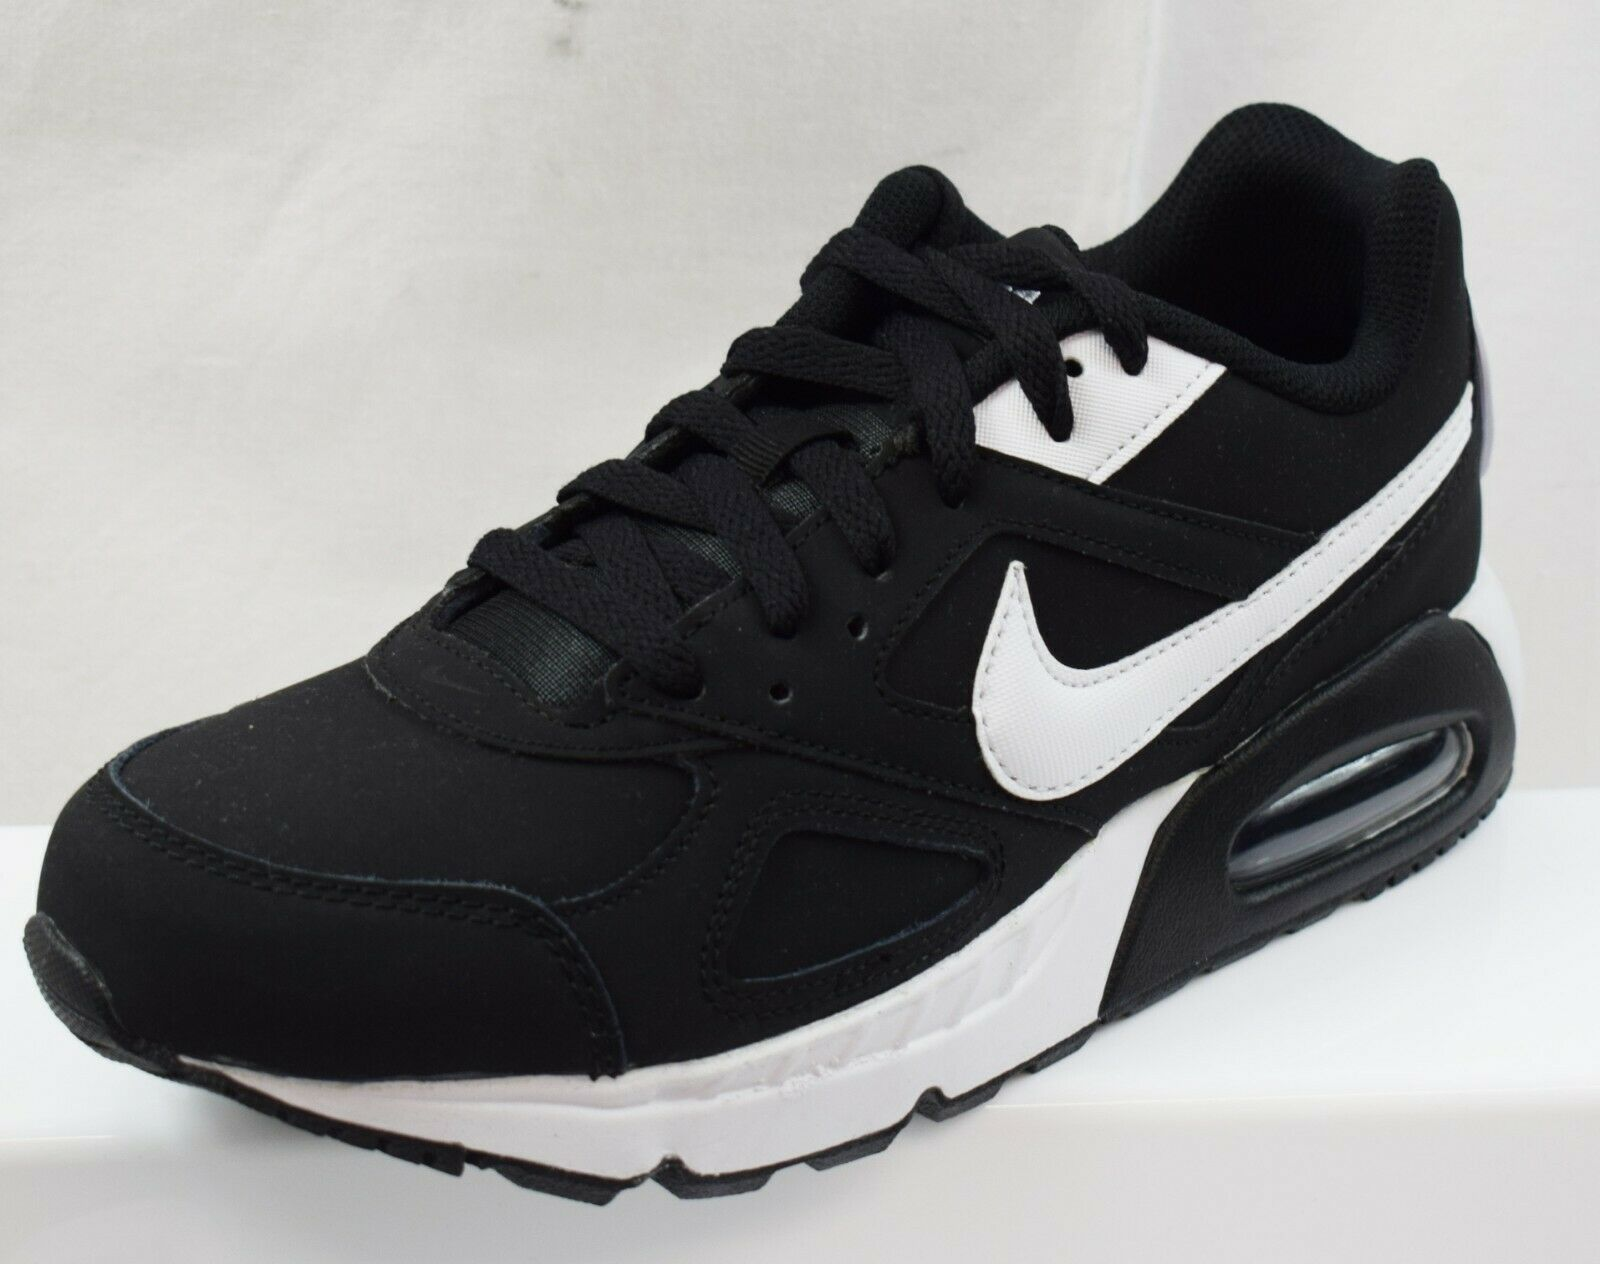 NIKE AIR MAX IVO LADIES TRAINERS BRAND NEW Größe UK 5 (BQ17